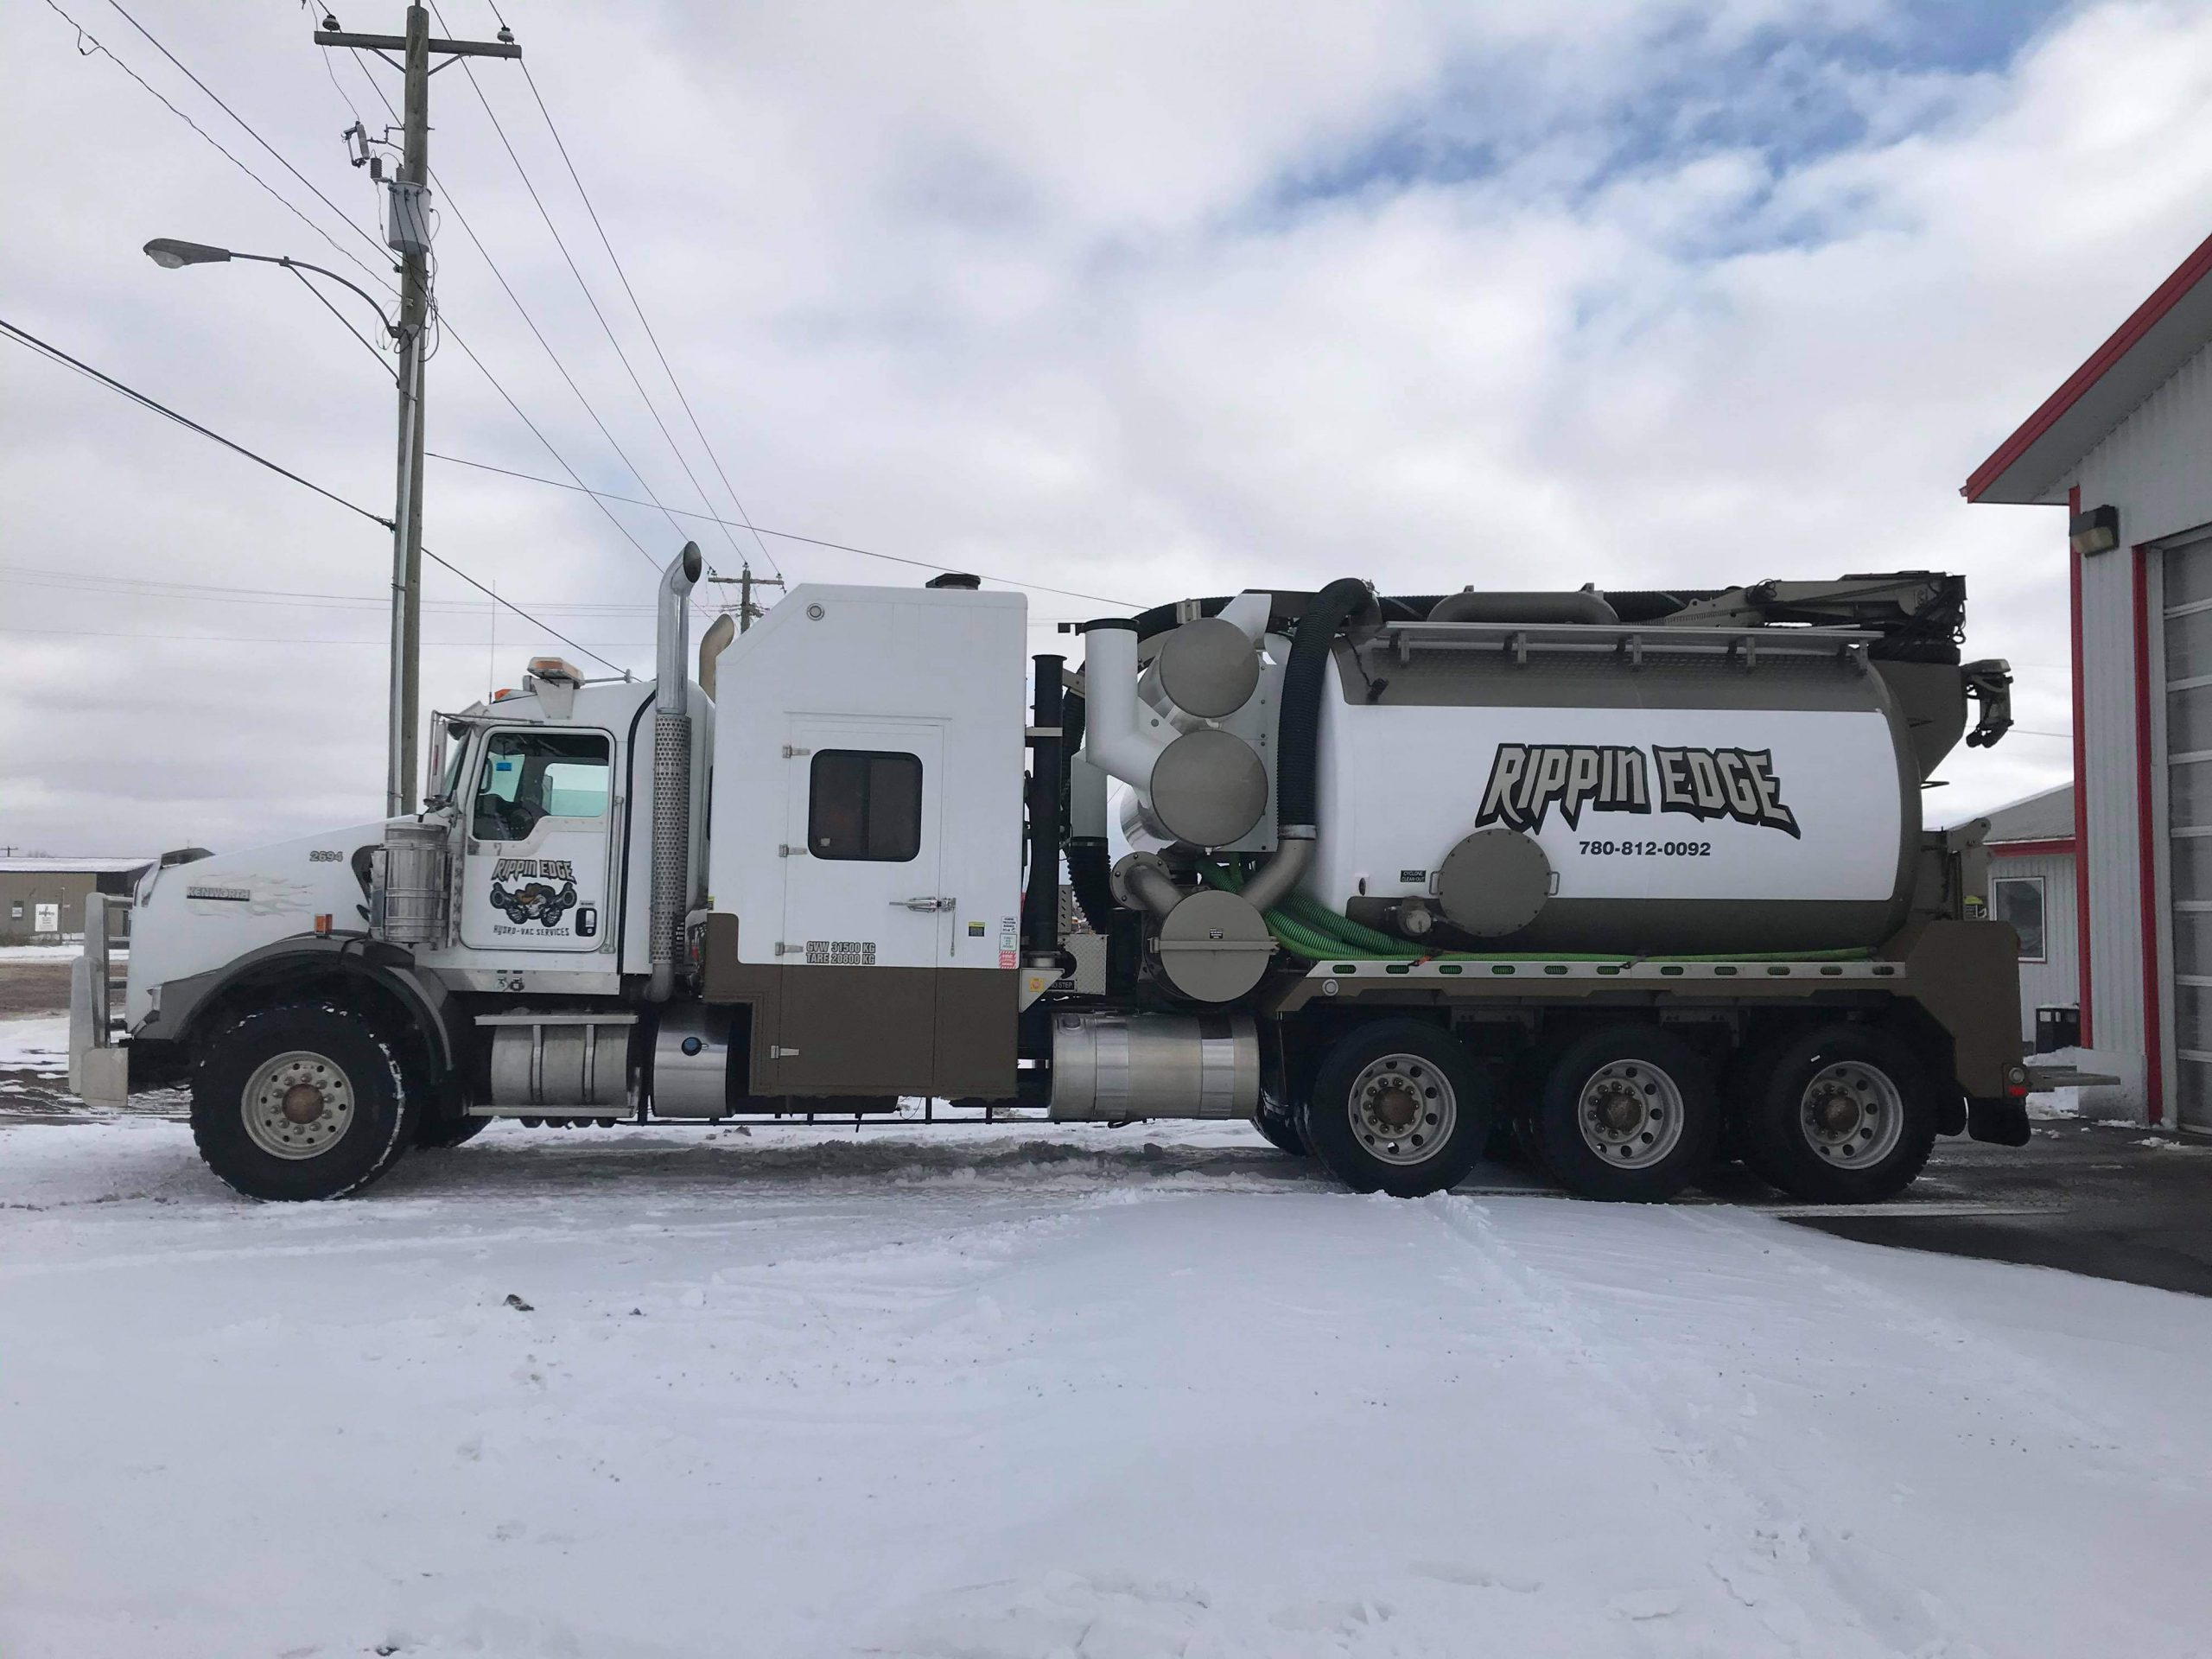 BENEFITS OF HYDROVAC EXCAVATION SERVICES